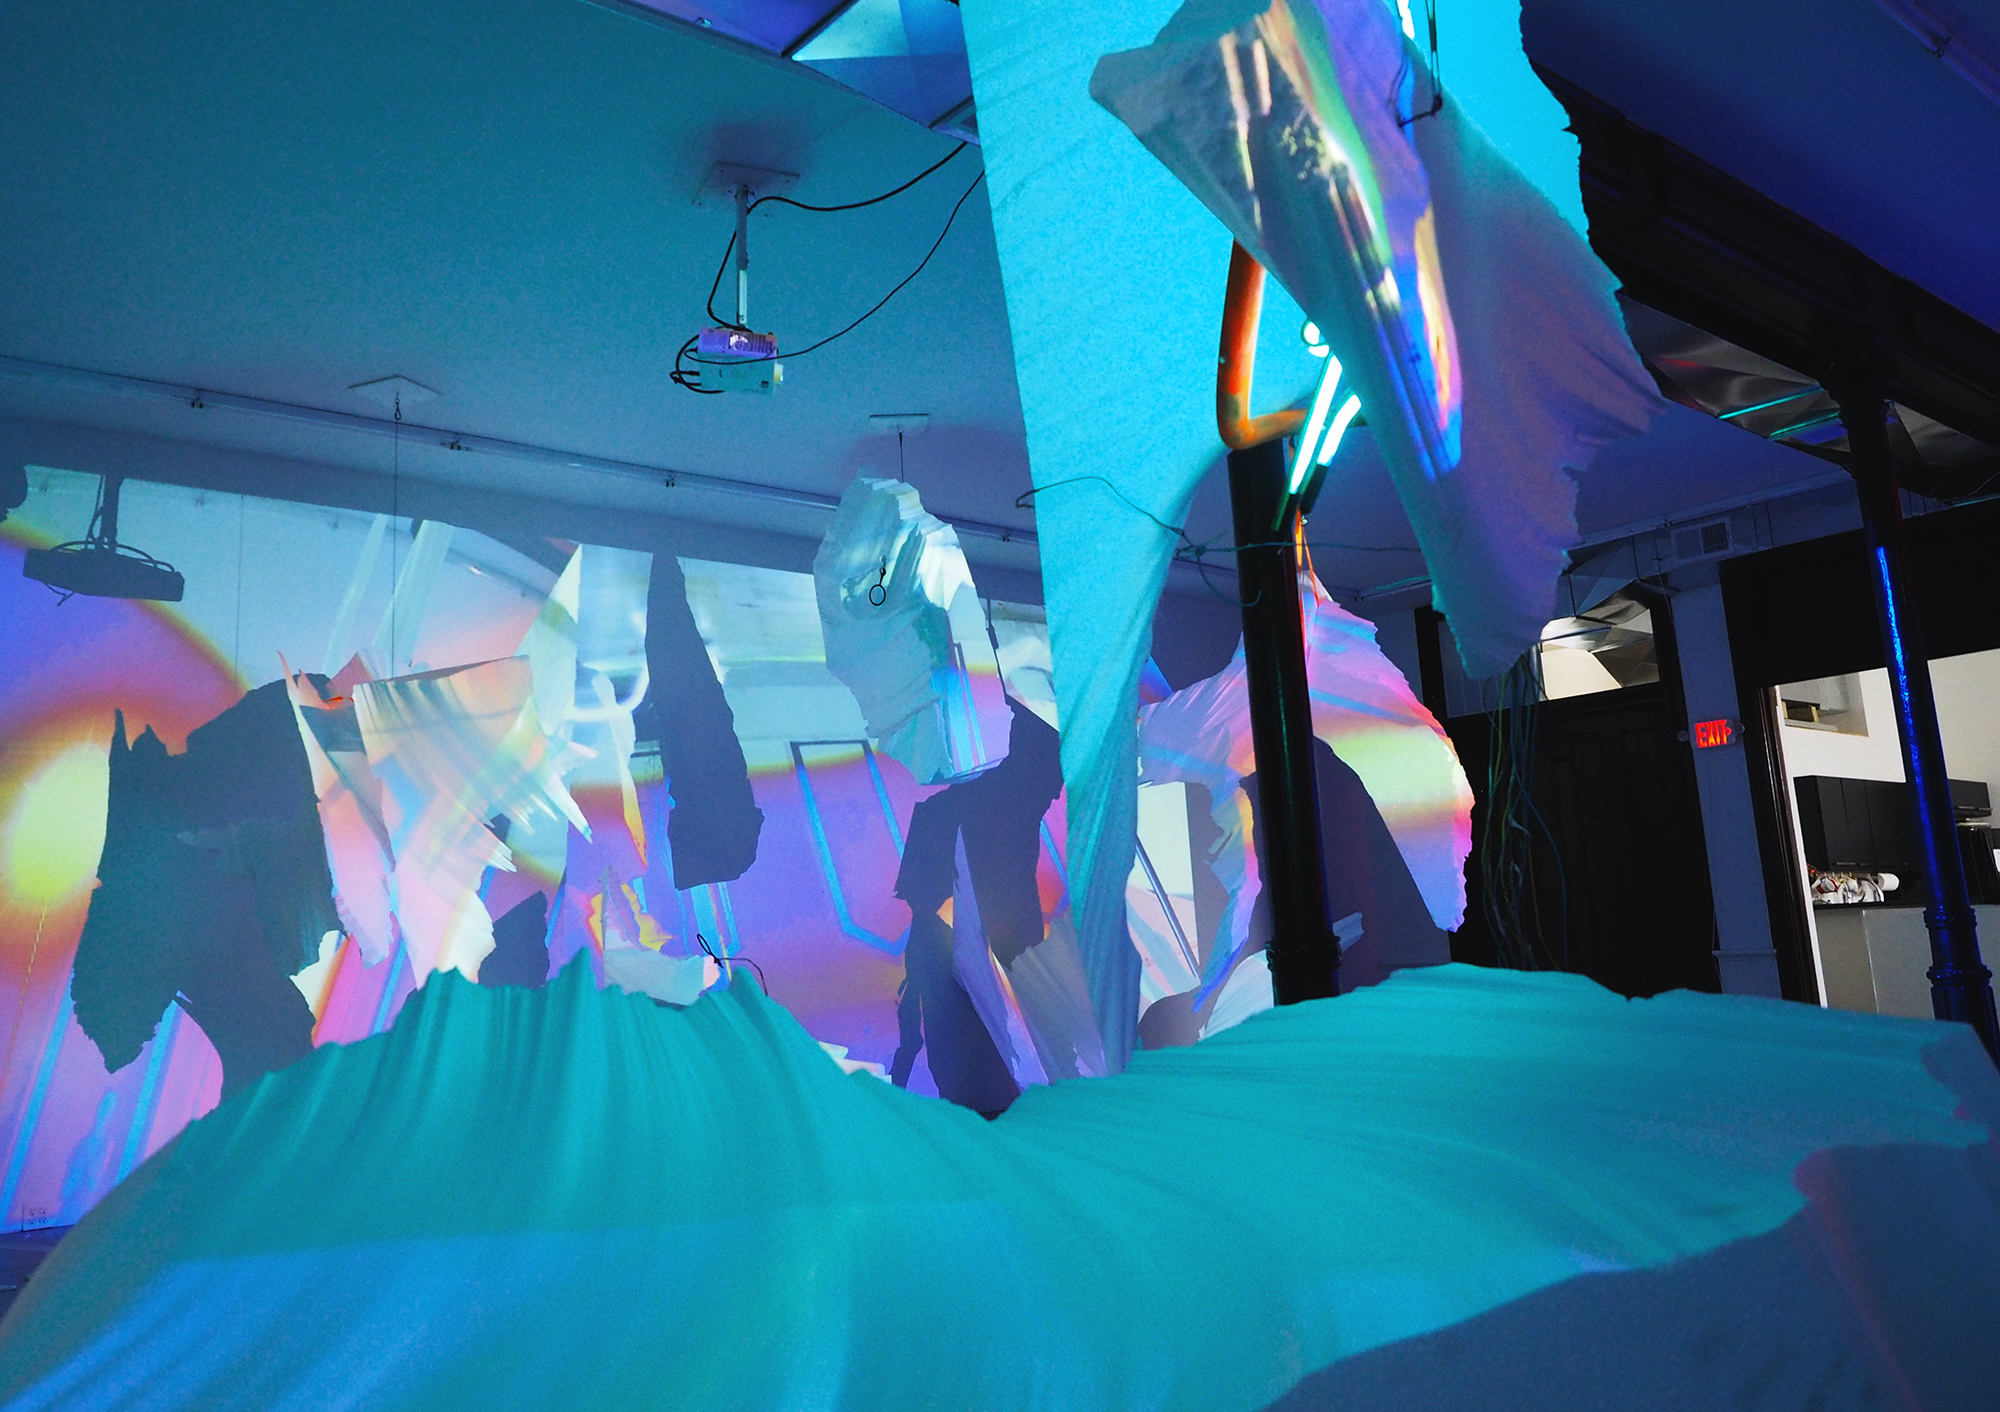 Interactive Video and Projection Mapping - Idea Fab Labs